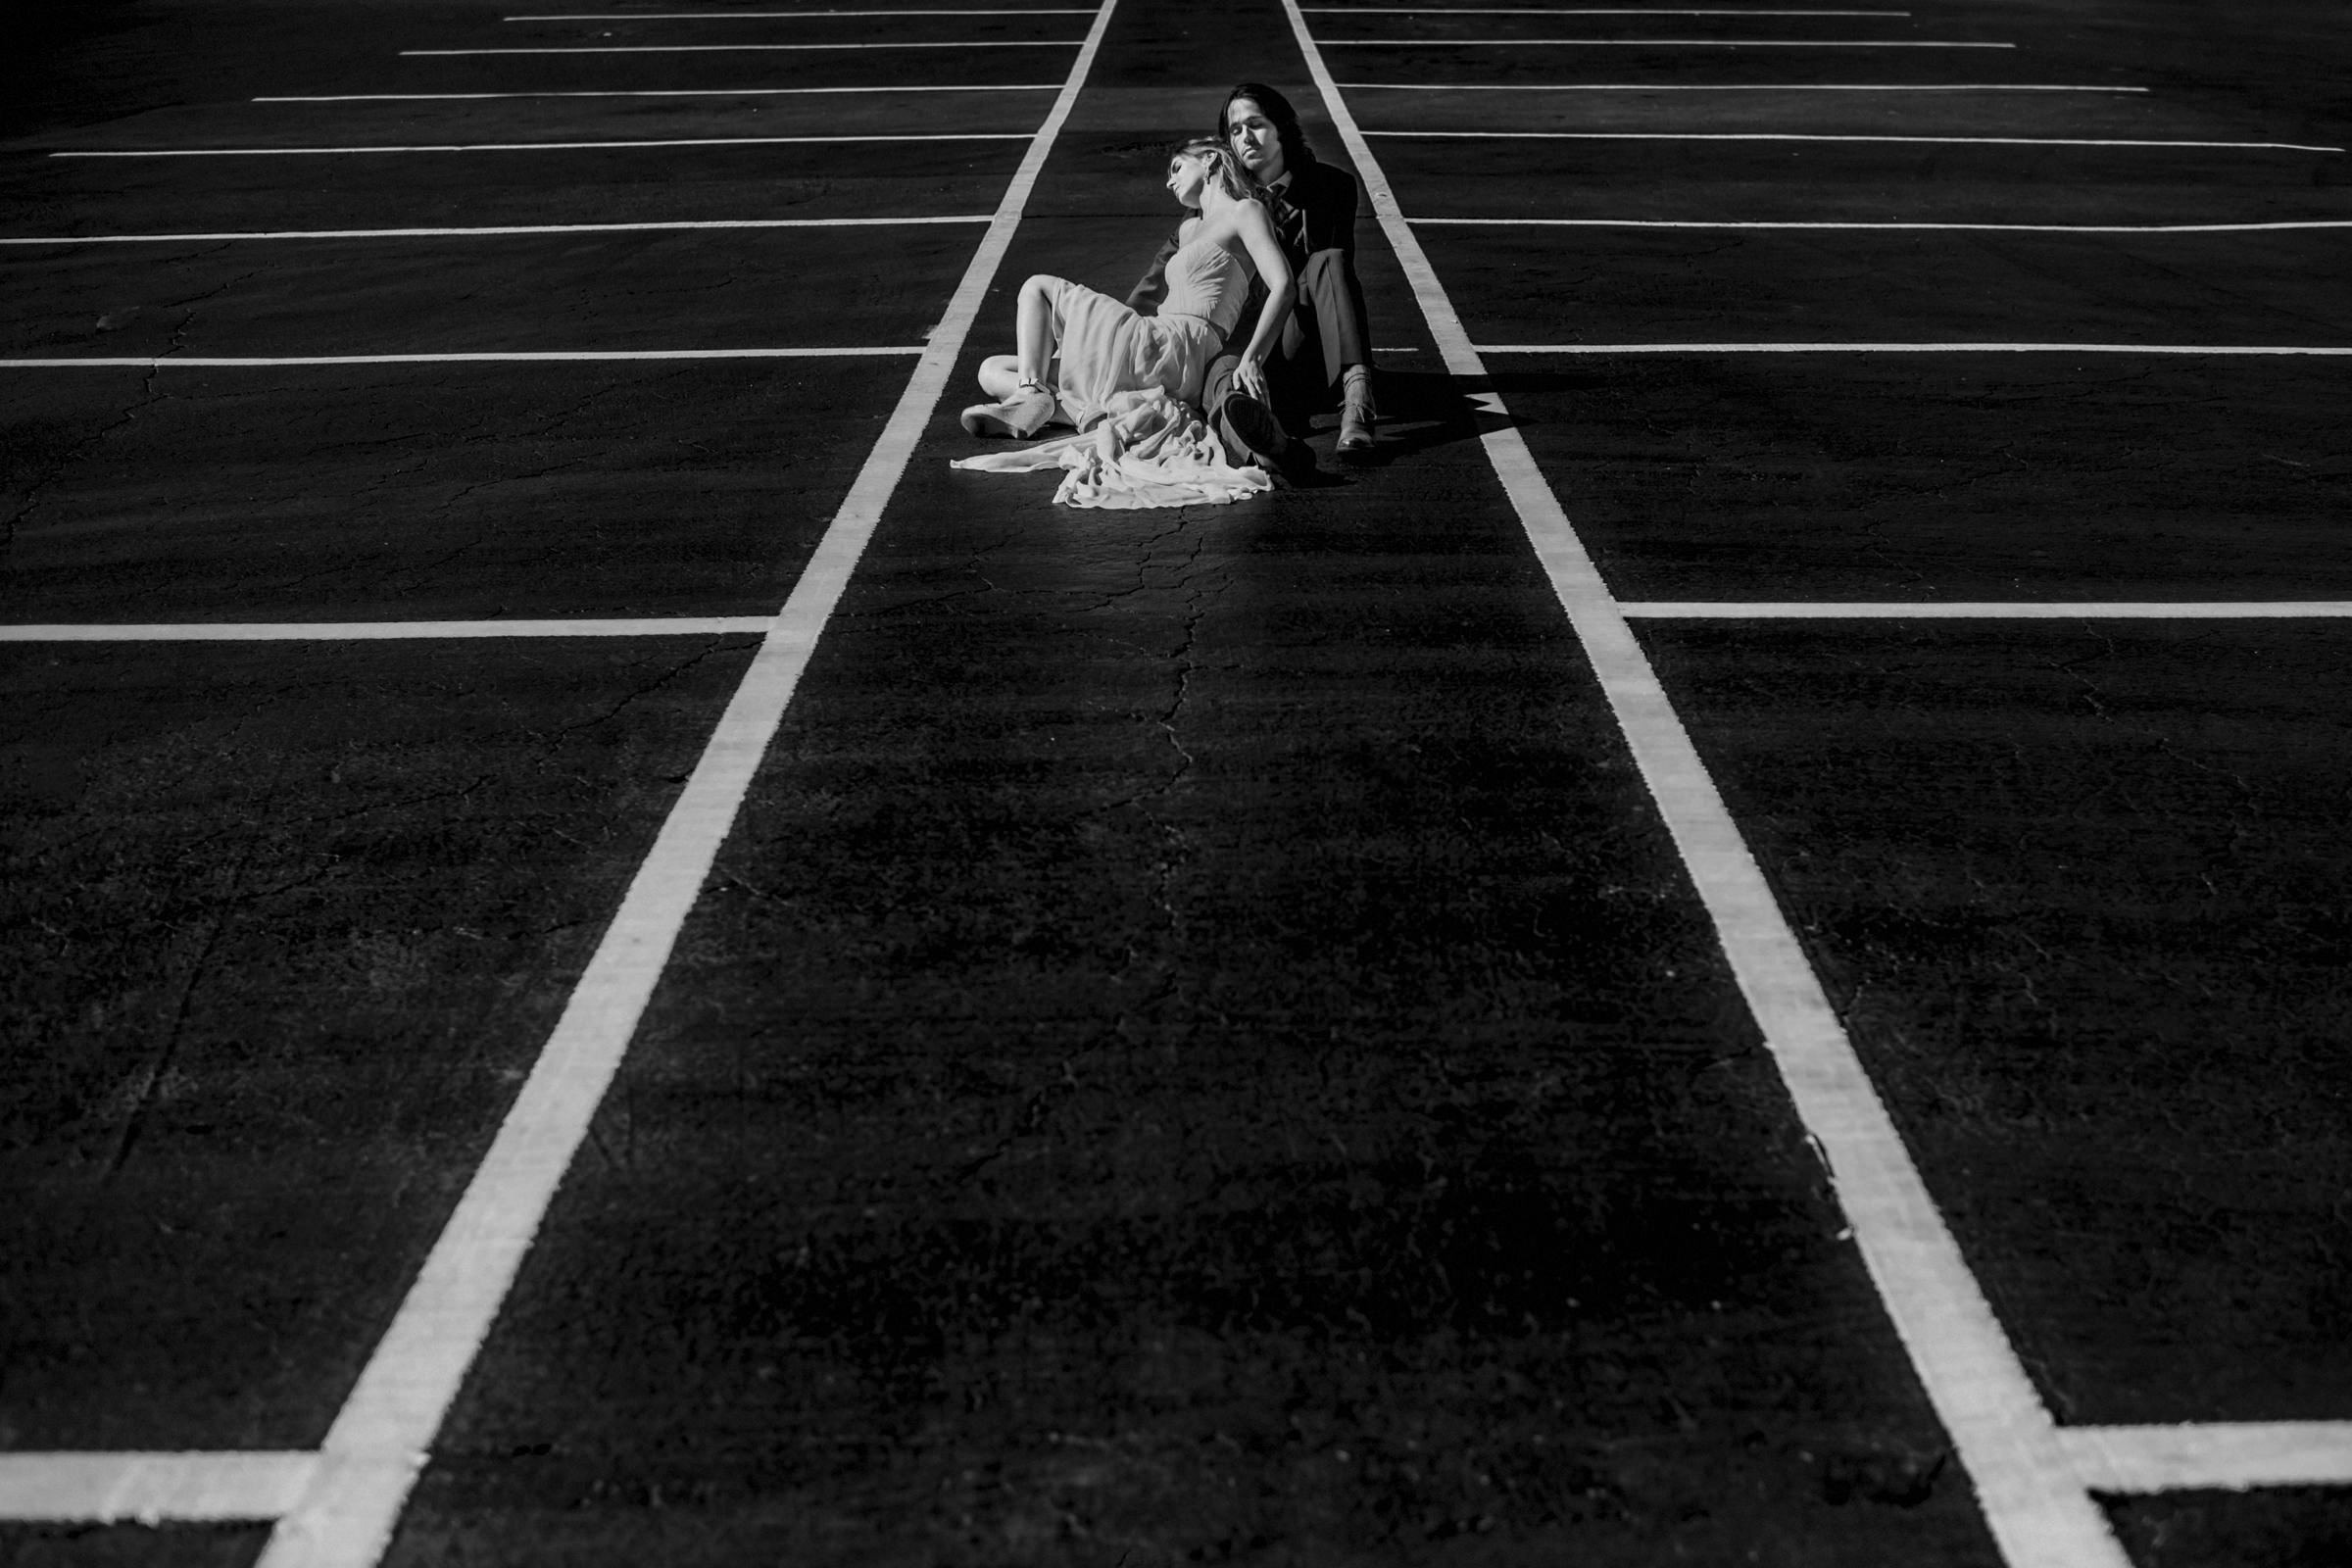 creative-compositon-of-couple-in-parking-lot-marcorojo-best-wedding-photographers-spain